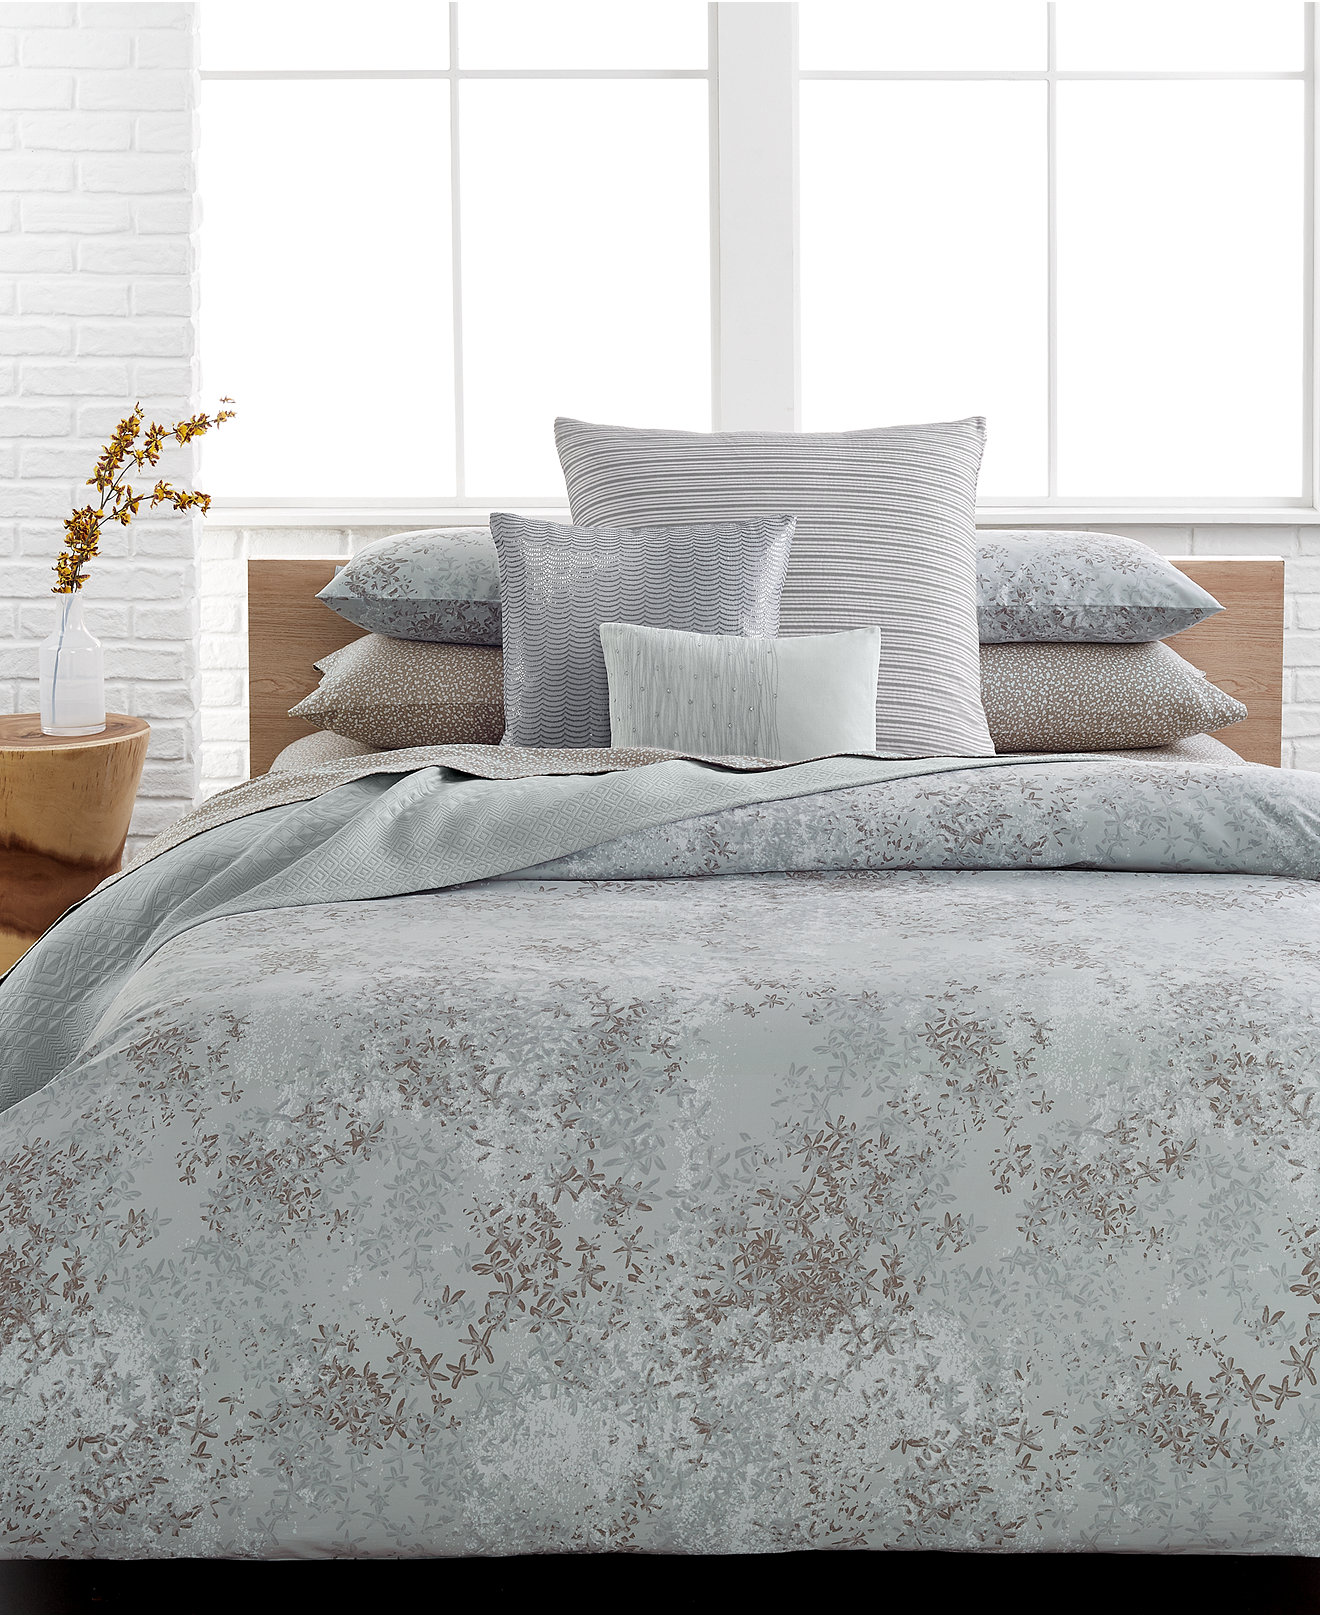 Calvin Klein Home Duvet Cover Sweetgalas - Brown pattern bedding double duvet set calvin klein bamboo bedding